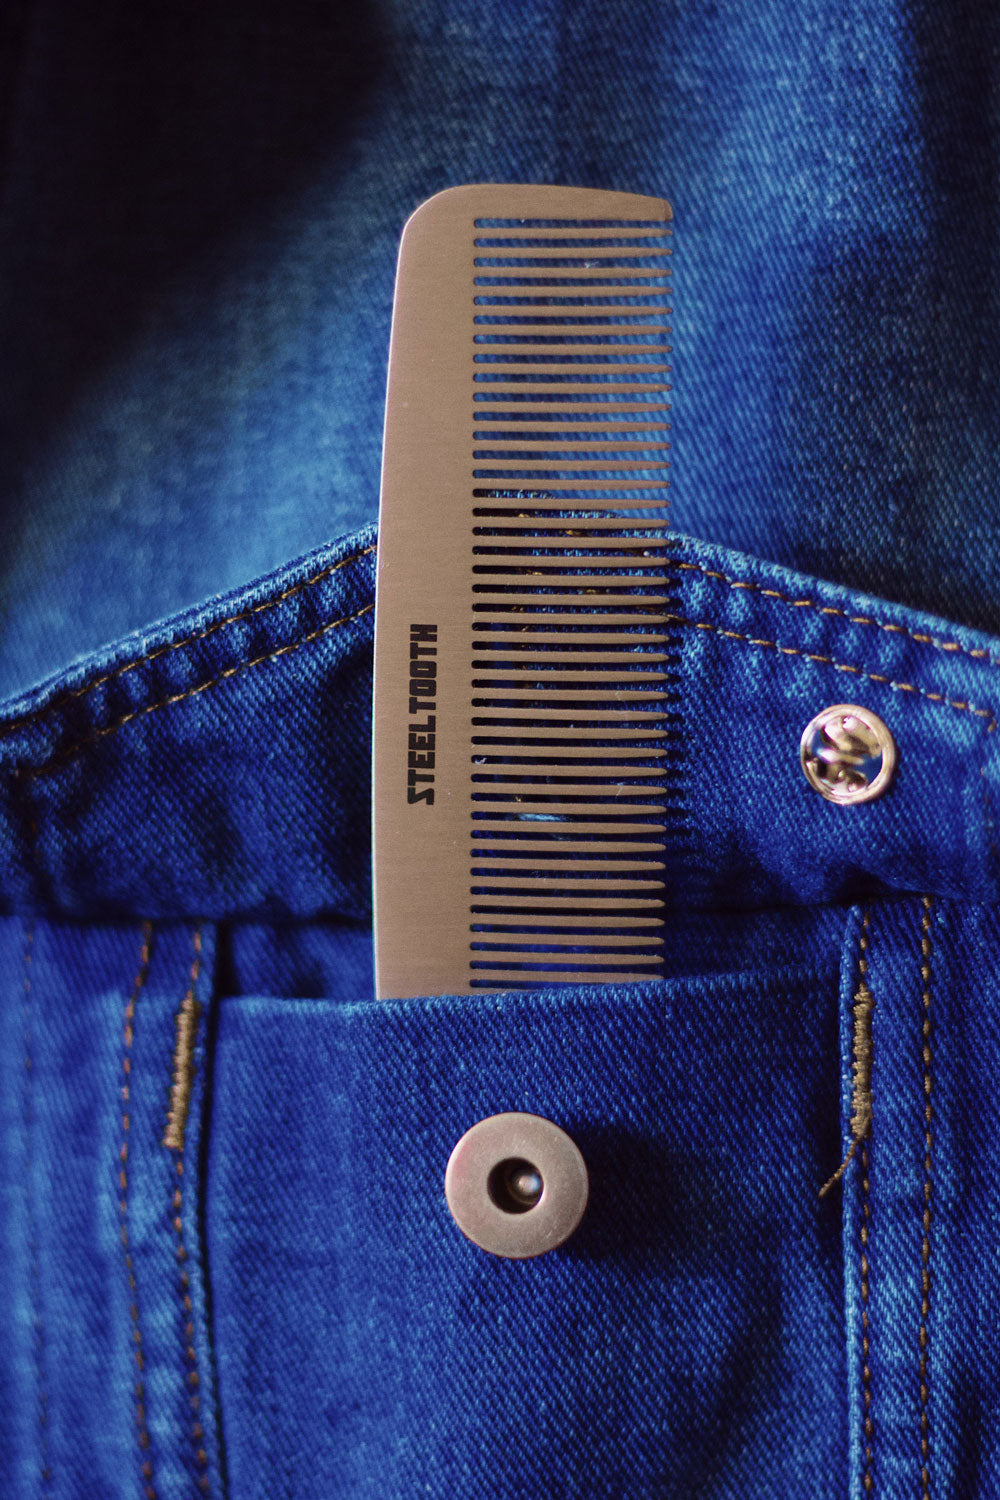 Steeltooth comb in a denim jacket pocket.